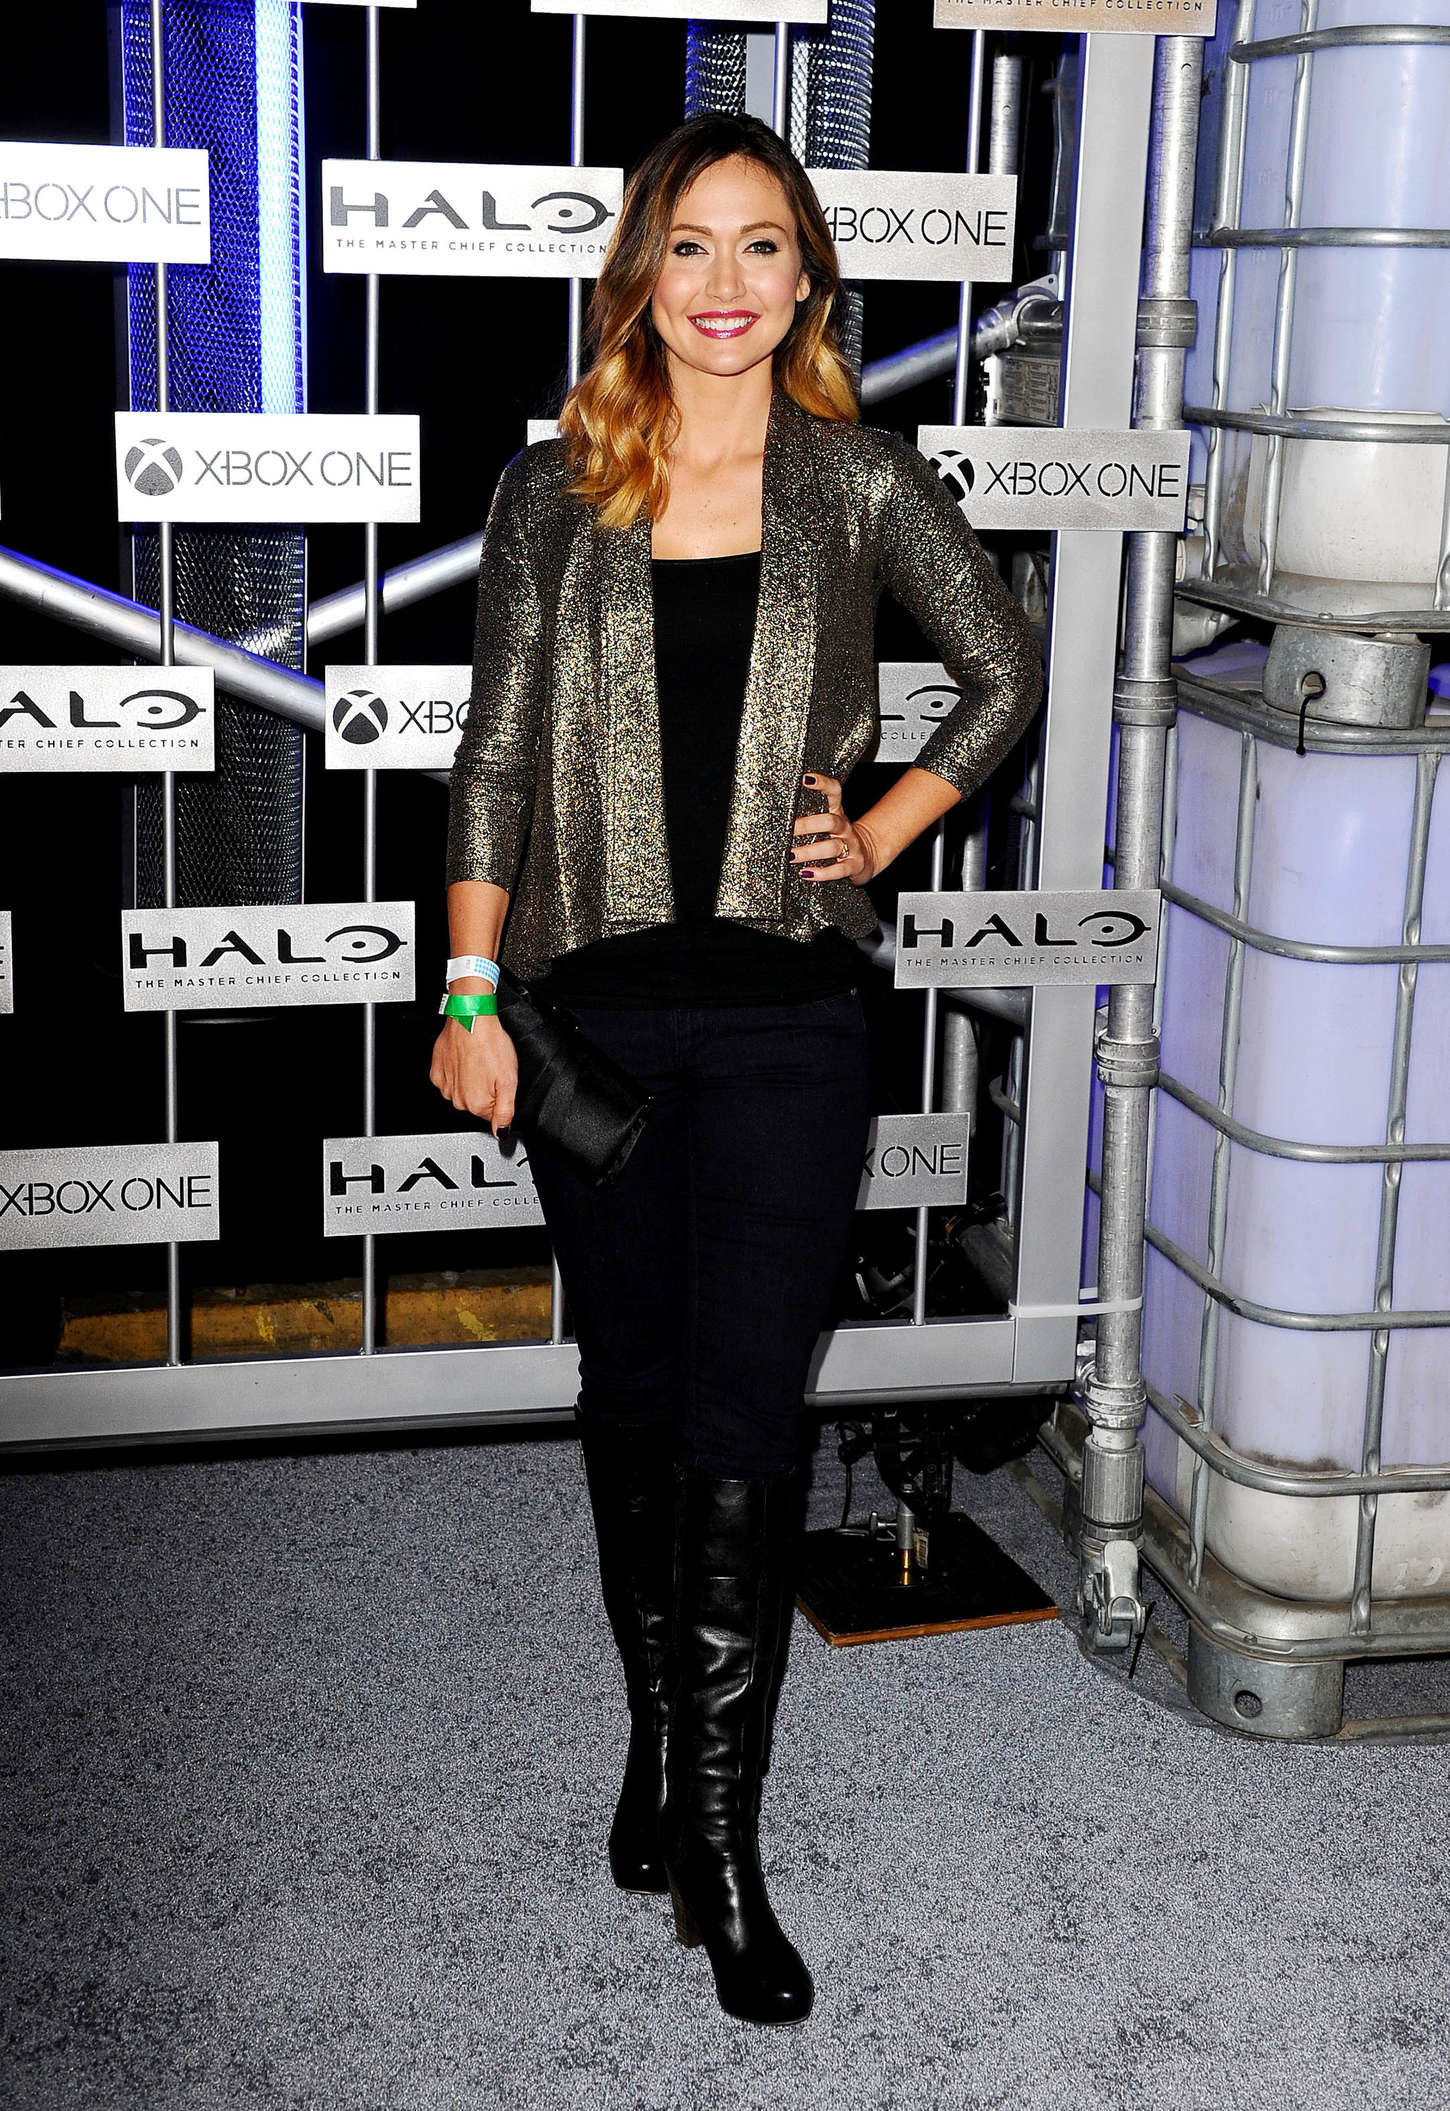 Res: 1450x2111, Jessica Chobot at HaloFest Halo The Master Chief